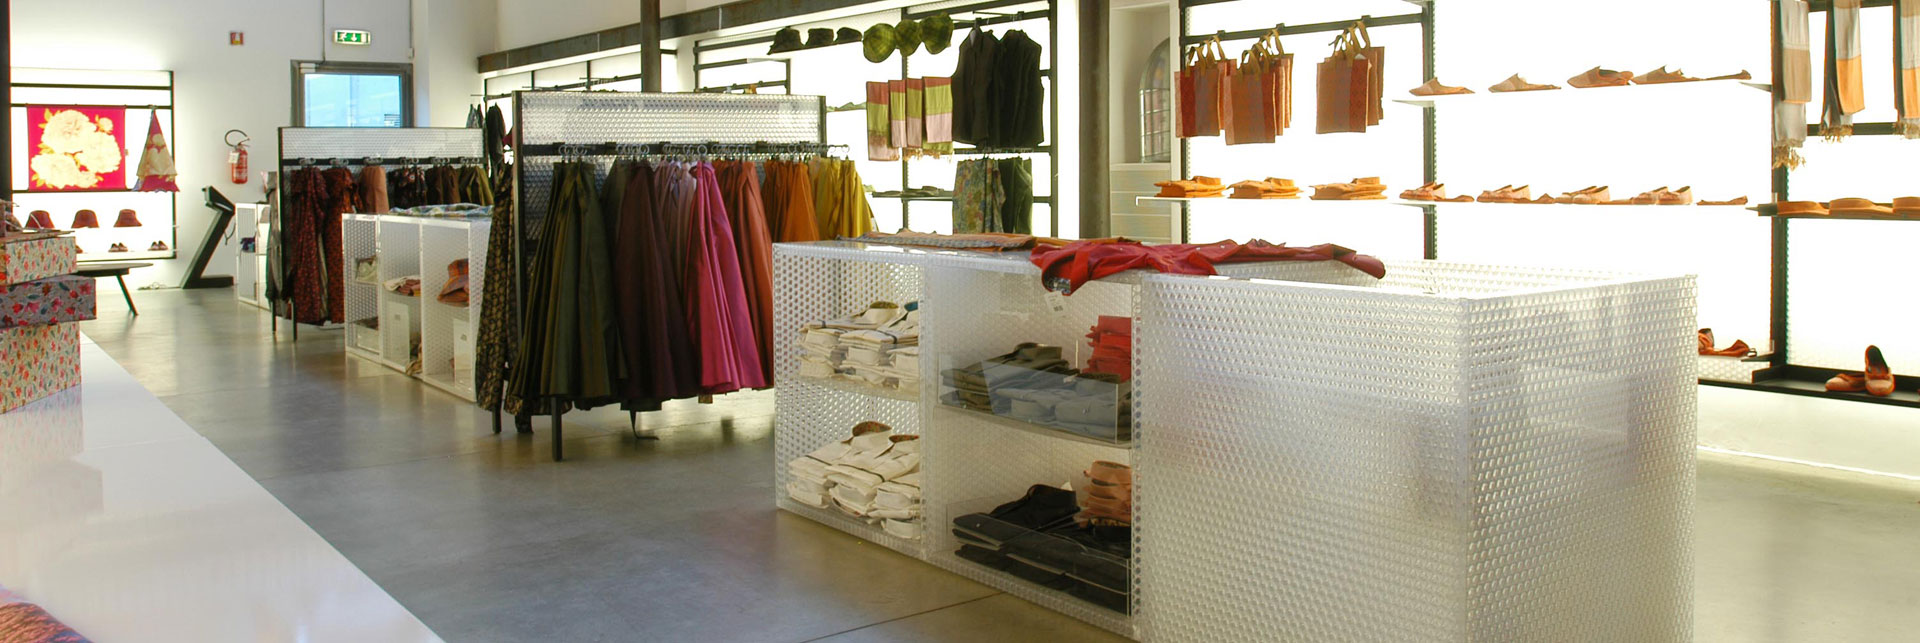 La Tessitura, Mantero Silk Showroom